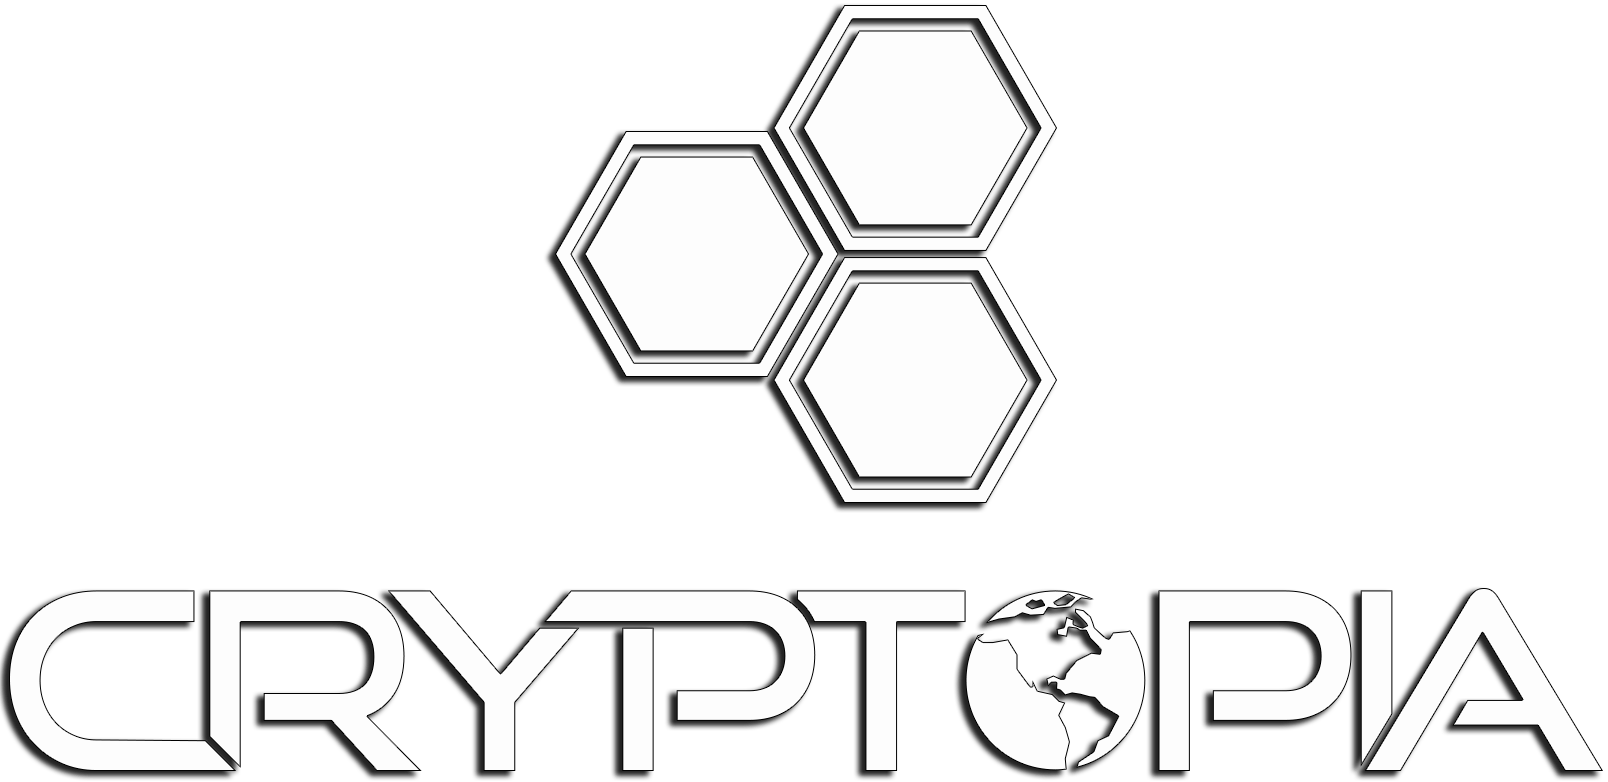 Cryptopia altcoin exchange - future coins - altcoin market  https://www.cryptopia.co.nz/Register?referrer=hanboerrigter